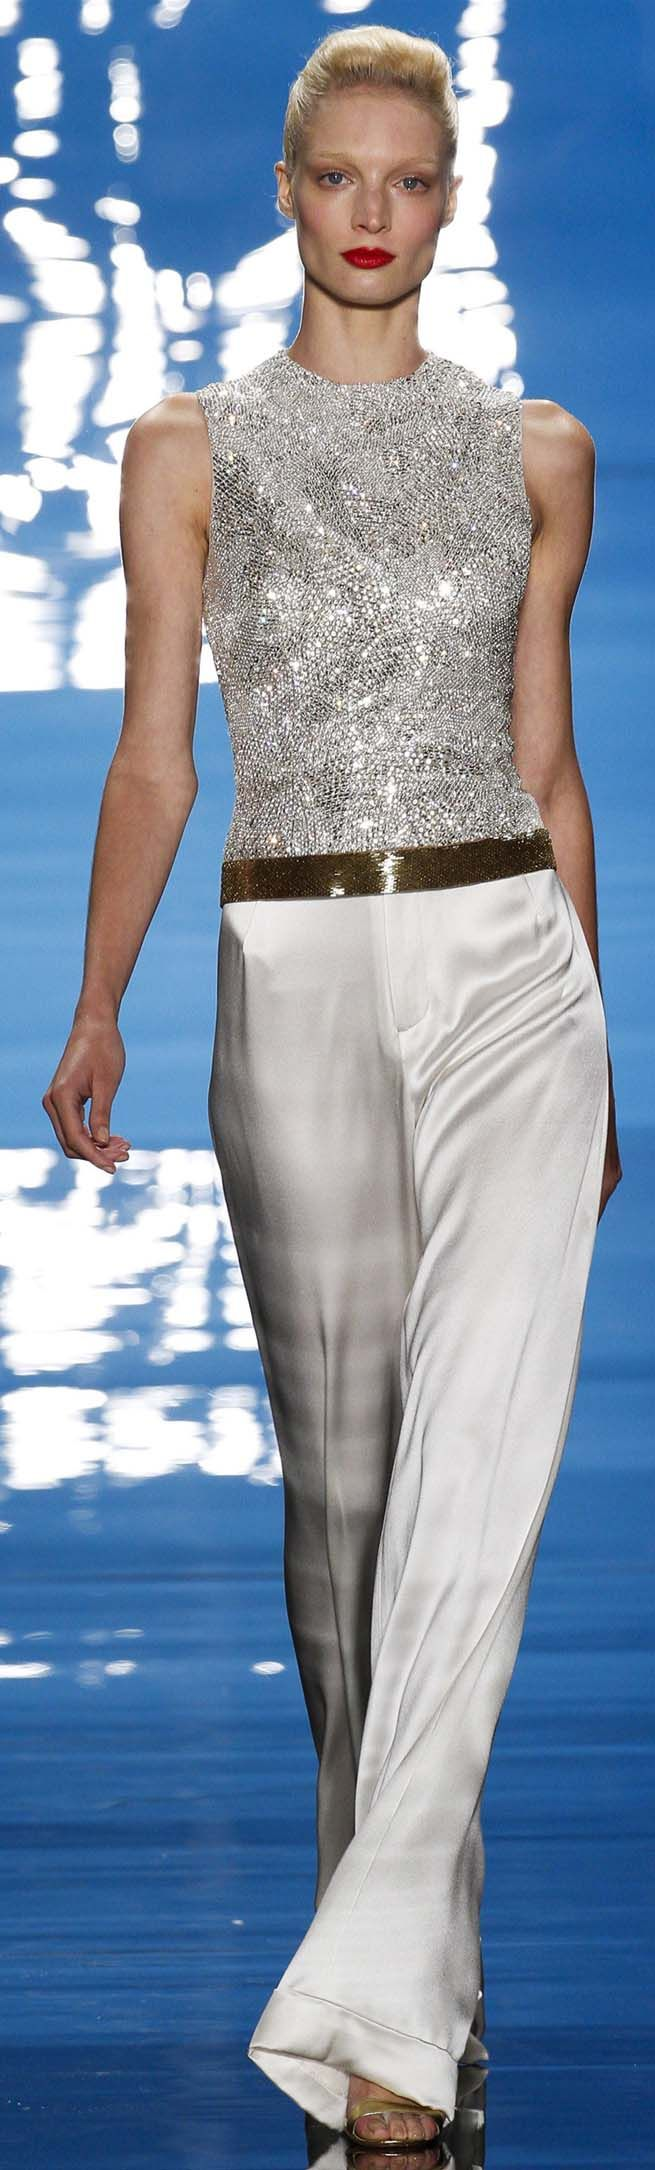 Reem Acra Spring Summer 2013 Ready-To-Wear Collection --beaded top white pants ♥✤